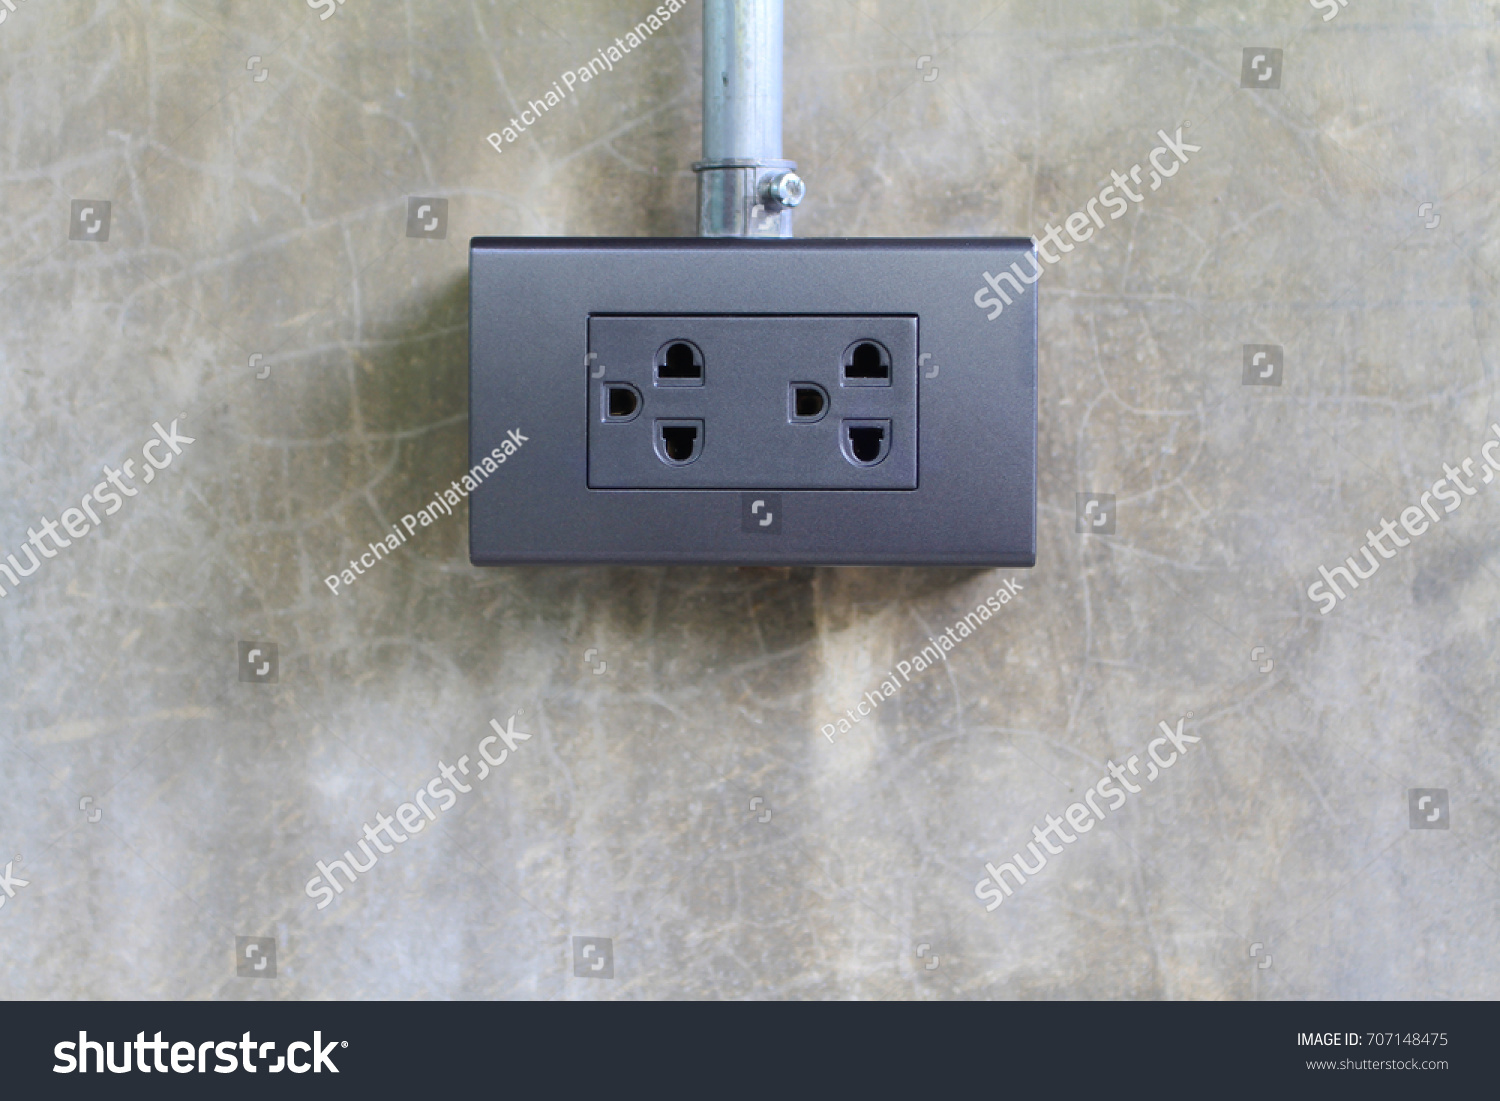 Thailand Electric Socket Outlets On Concrete Stock Photo (Edit Now ...